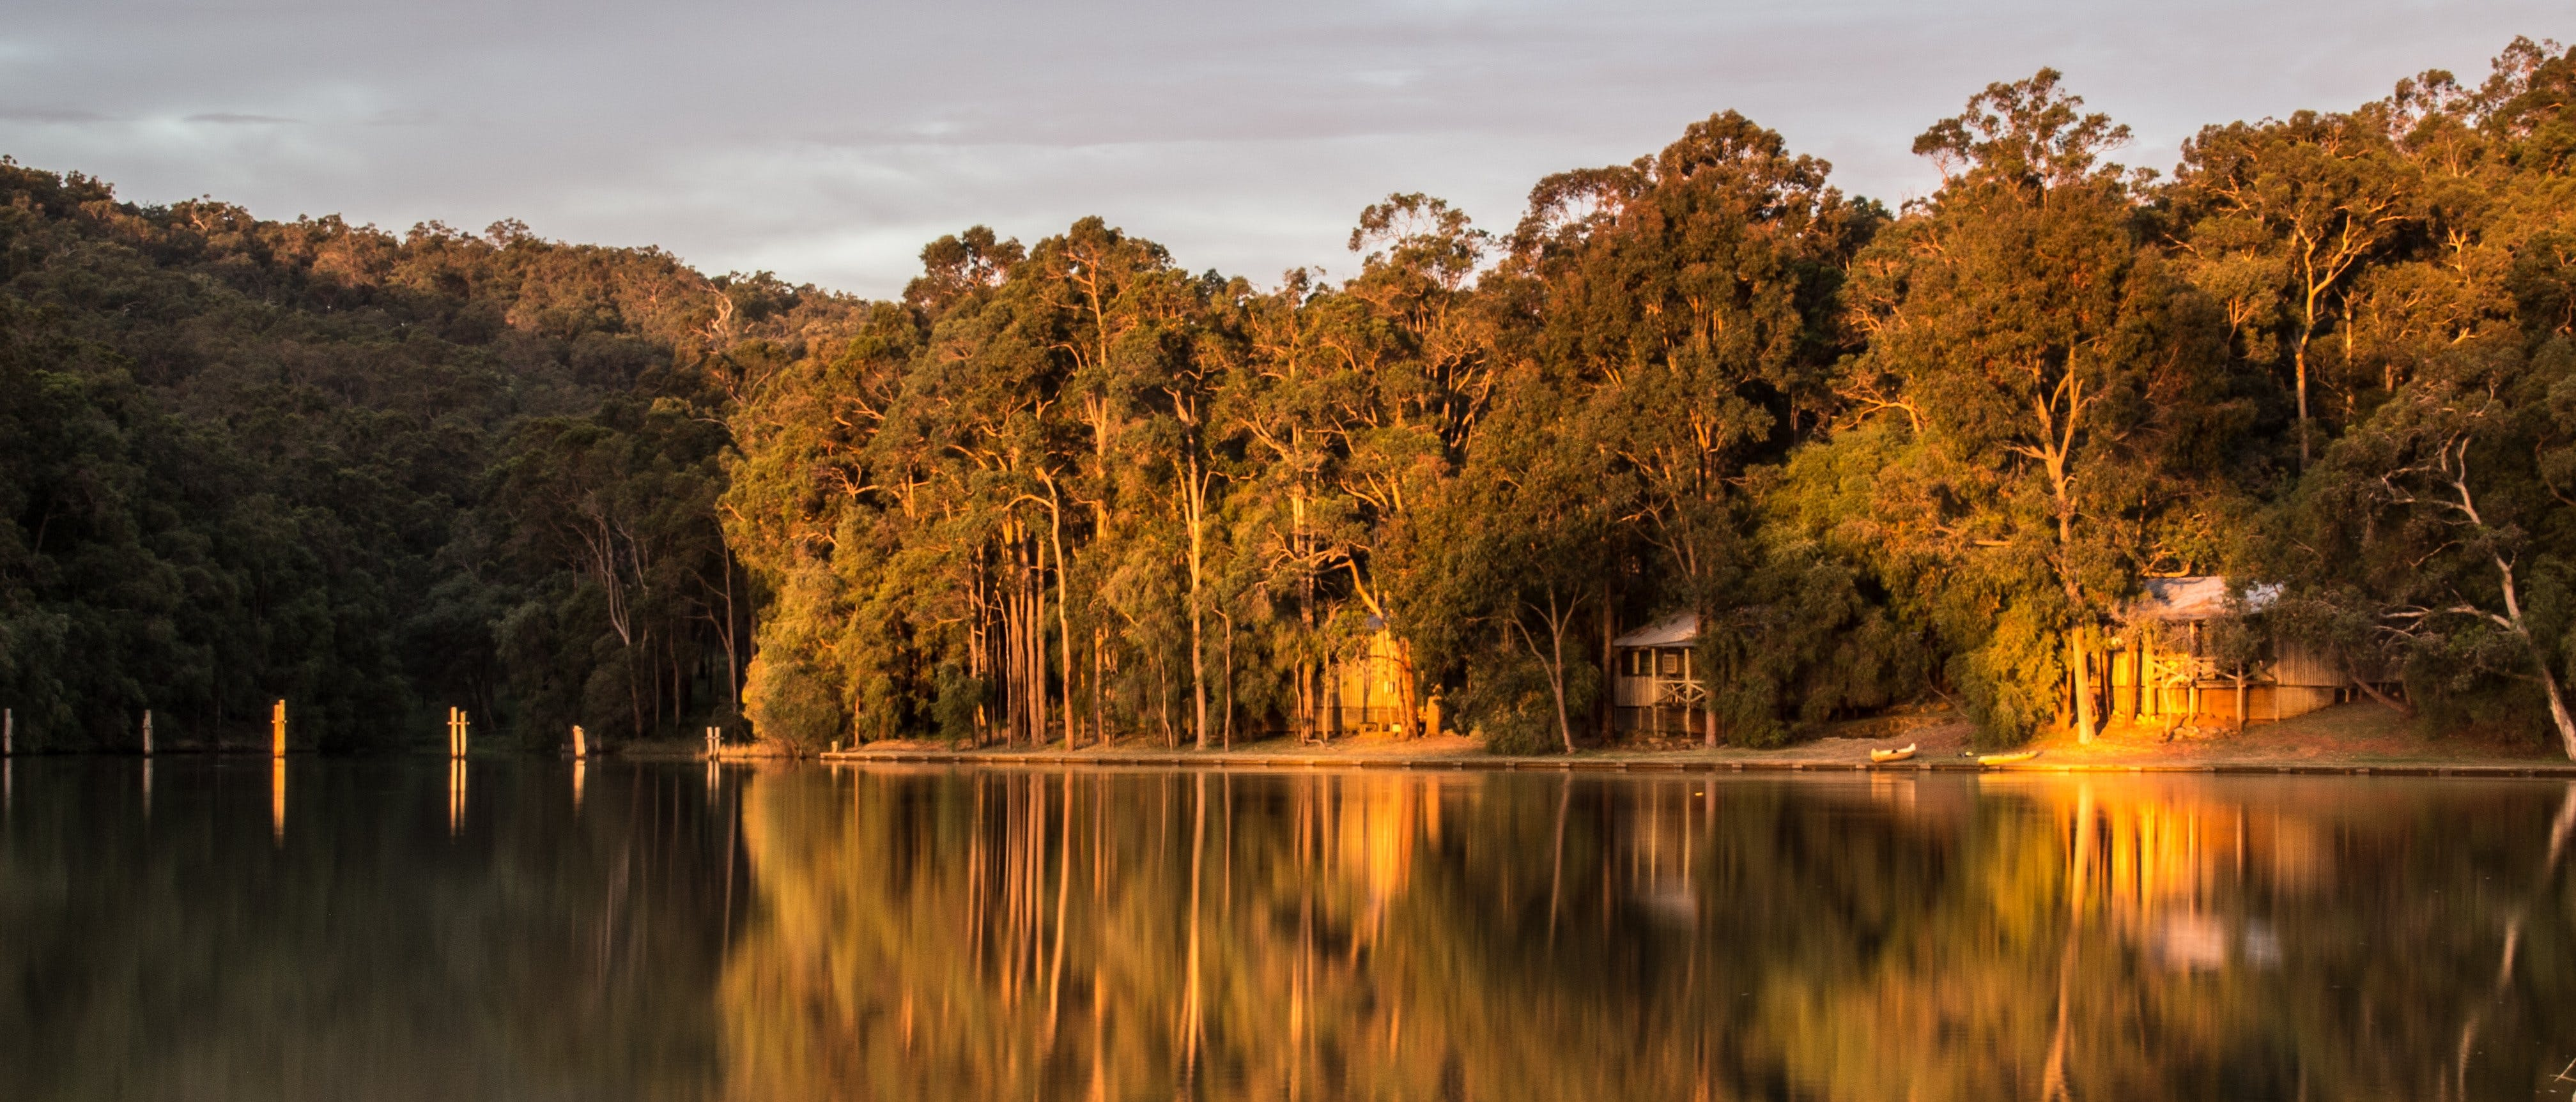 Evedon Lakeside Retreat - Accommodation Perth